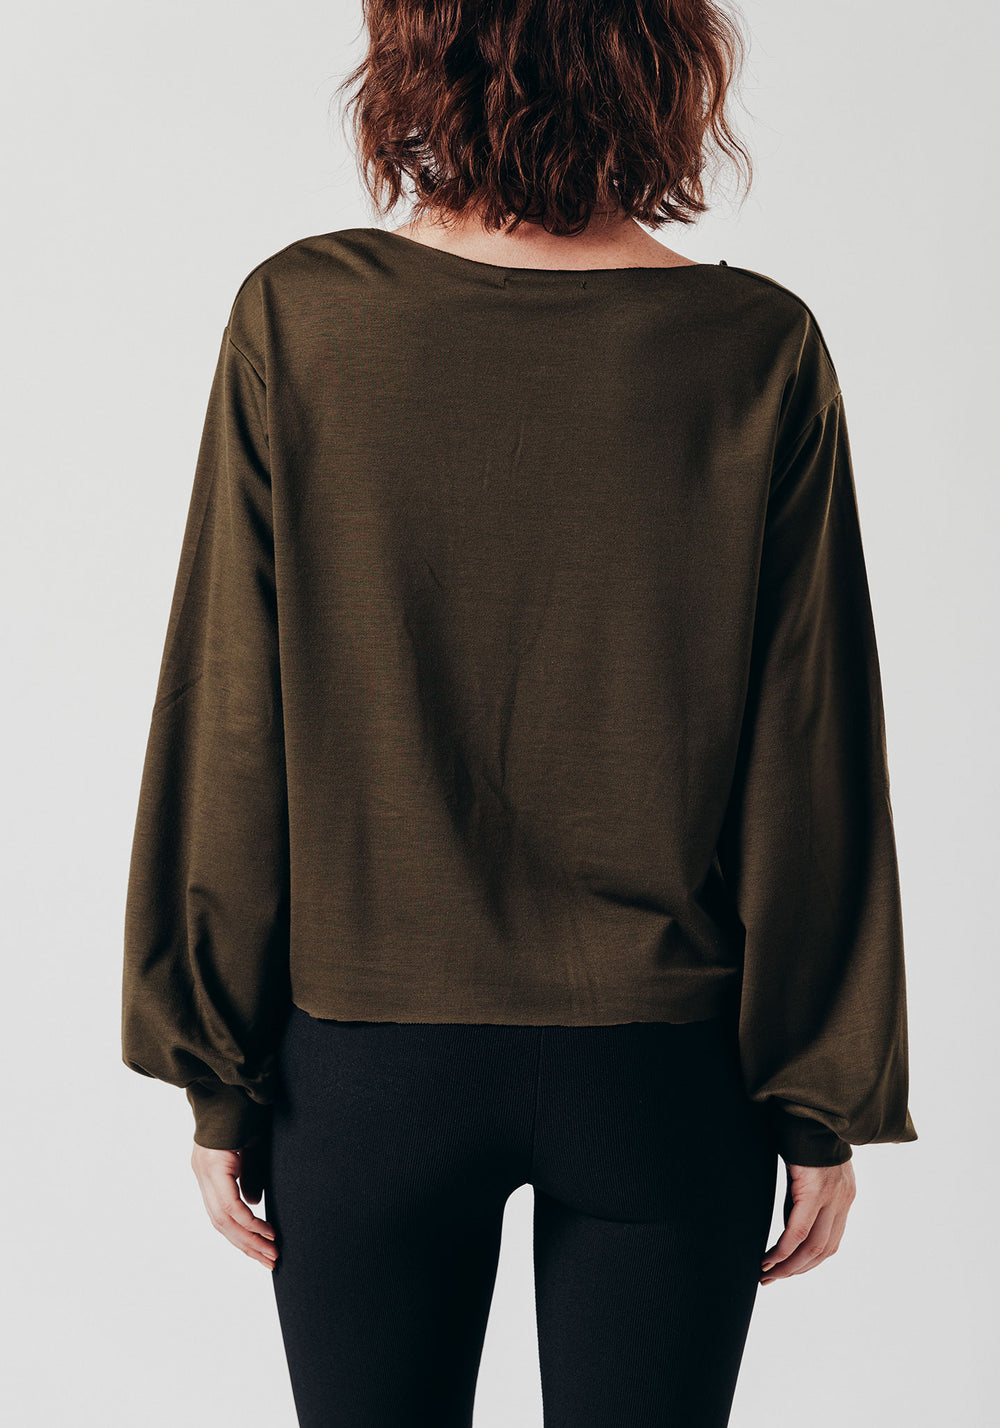 Green Drop Shoulder Top